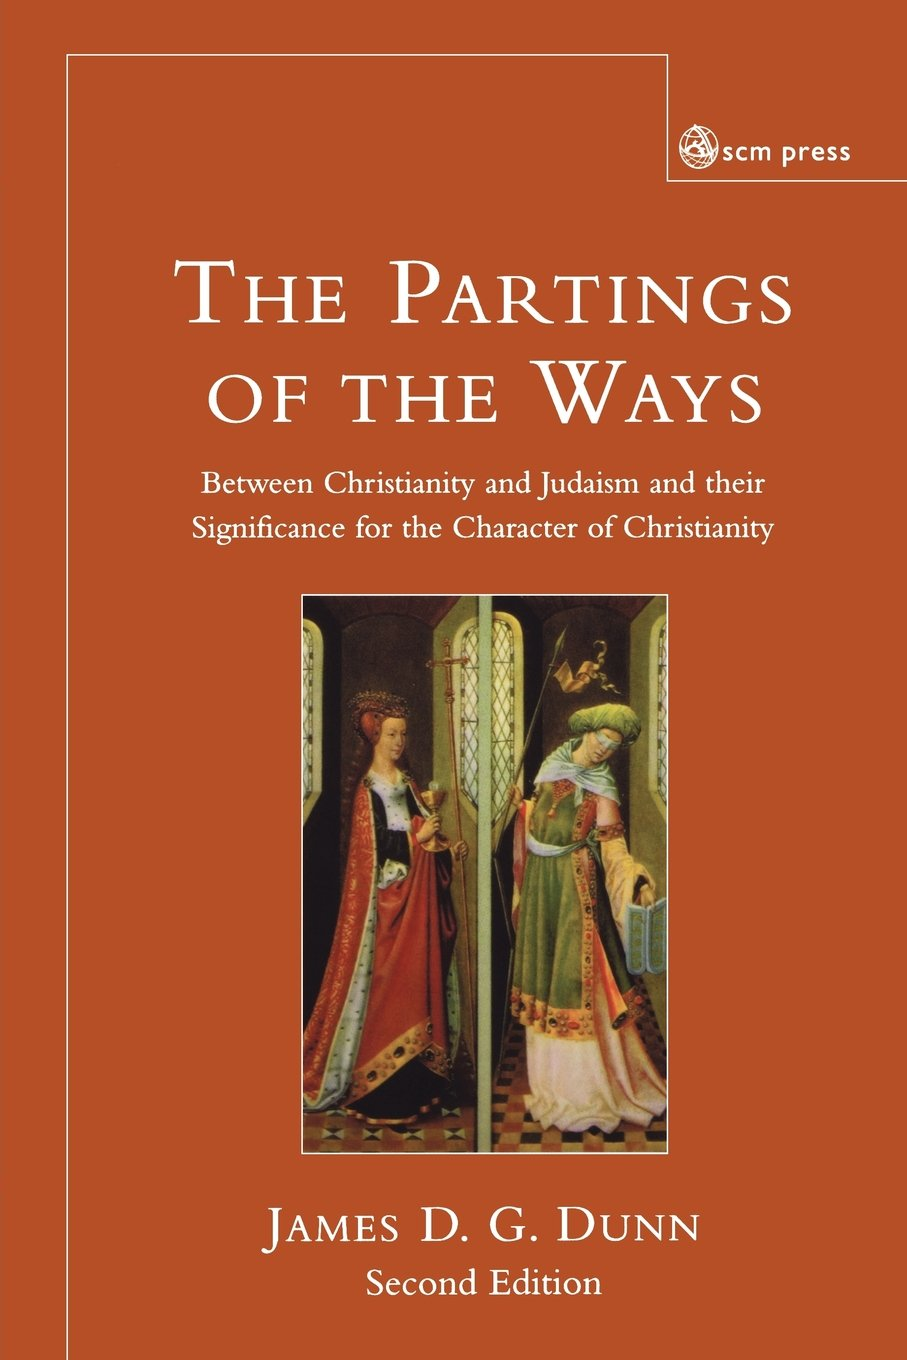 Parting of the Ways: Between Christianity and Judaism and Their Significance for the Character of Christianity